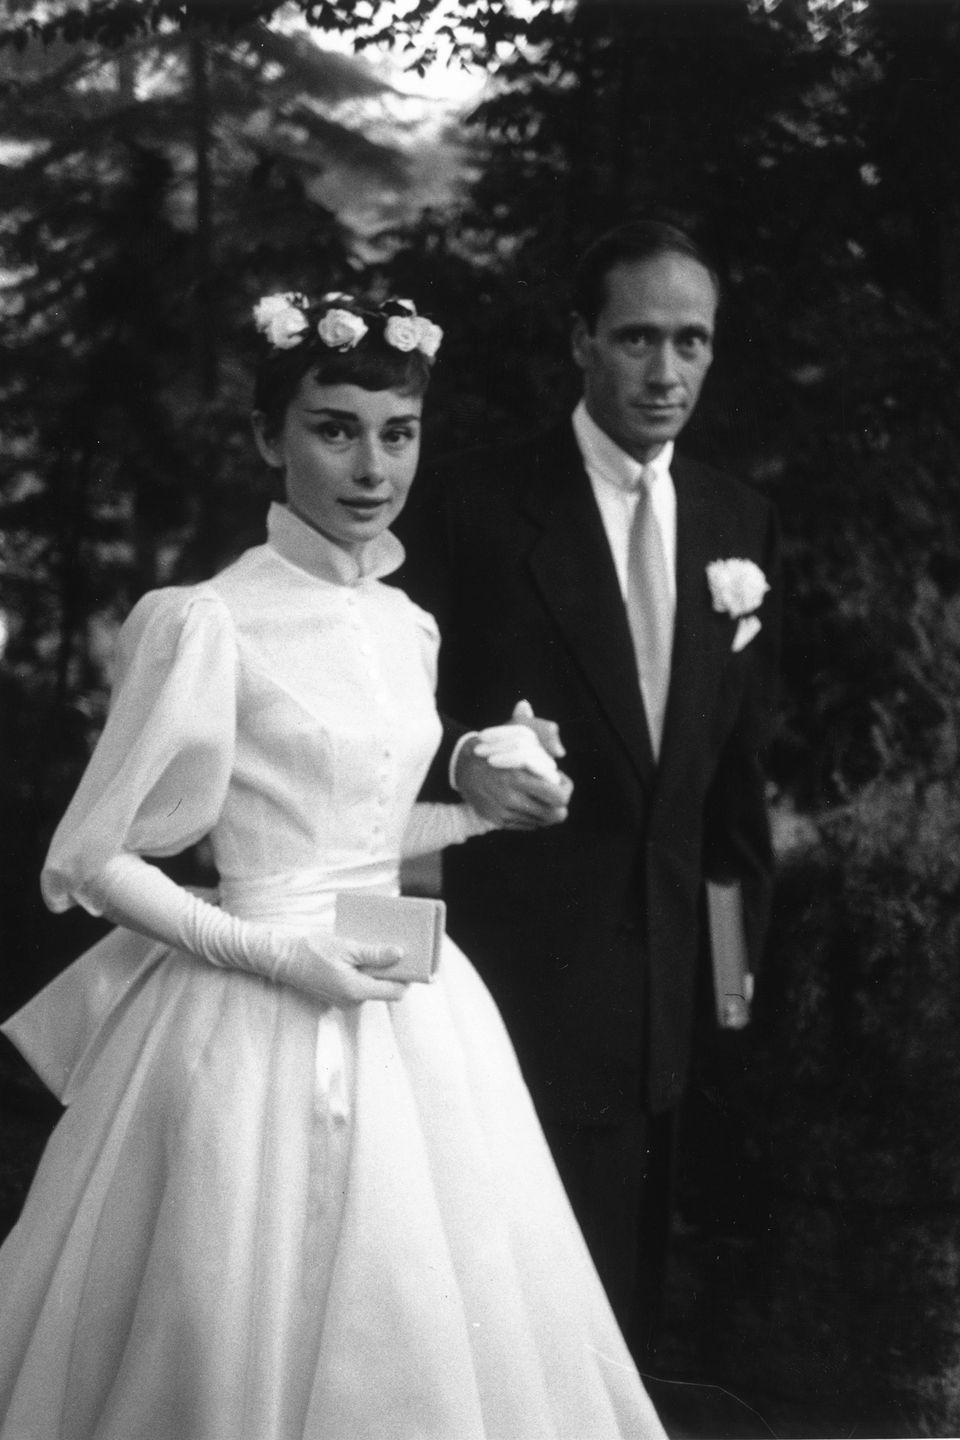 <p>Audrey Hepburn married her first husband, Mel Ferrer, in a secret wedding ceremony in Switzerland. The bride wore a high neck tea length dress with elbow length gloves and a crown of roses in her hair for the occasion. Hepburn and Ferrer had one child together and were married until 1968. </p>